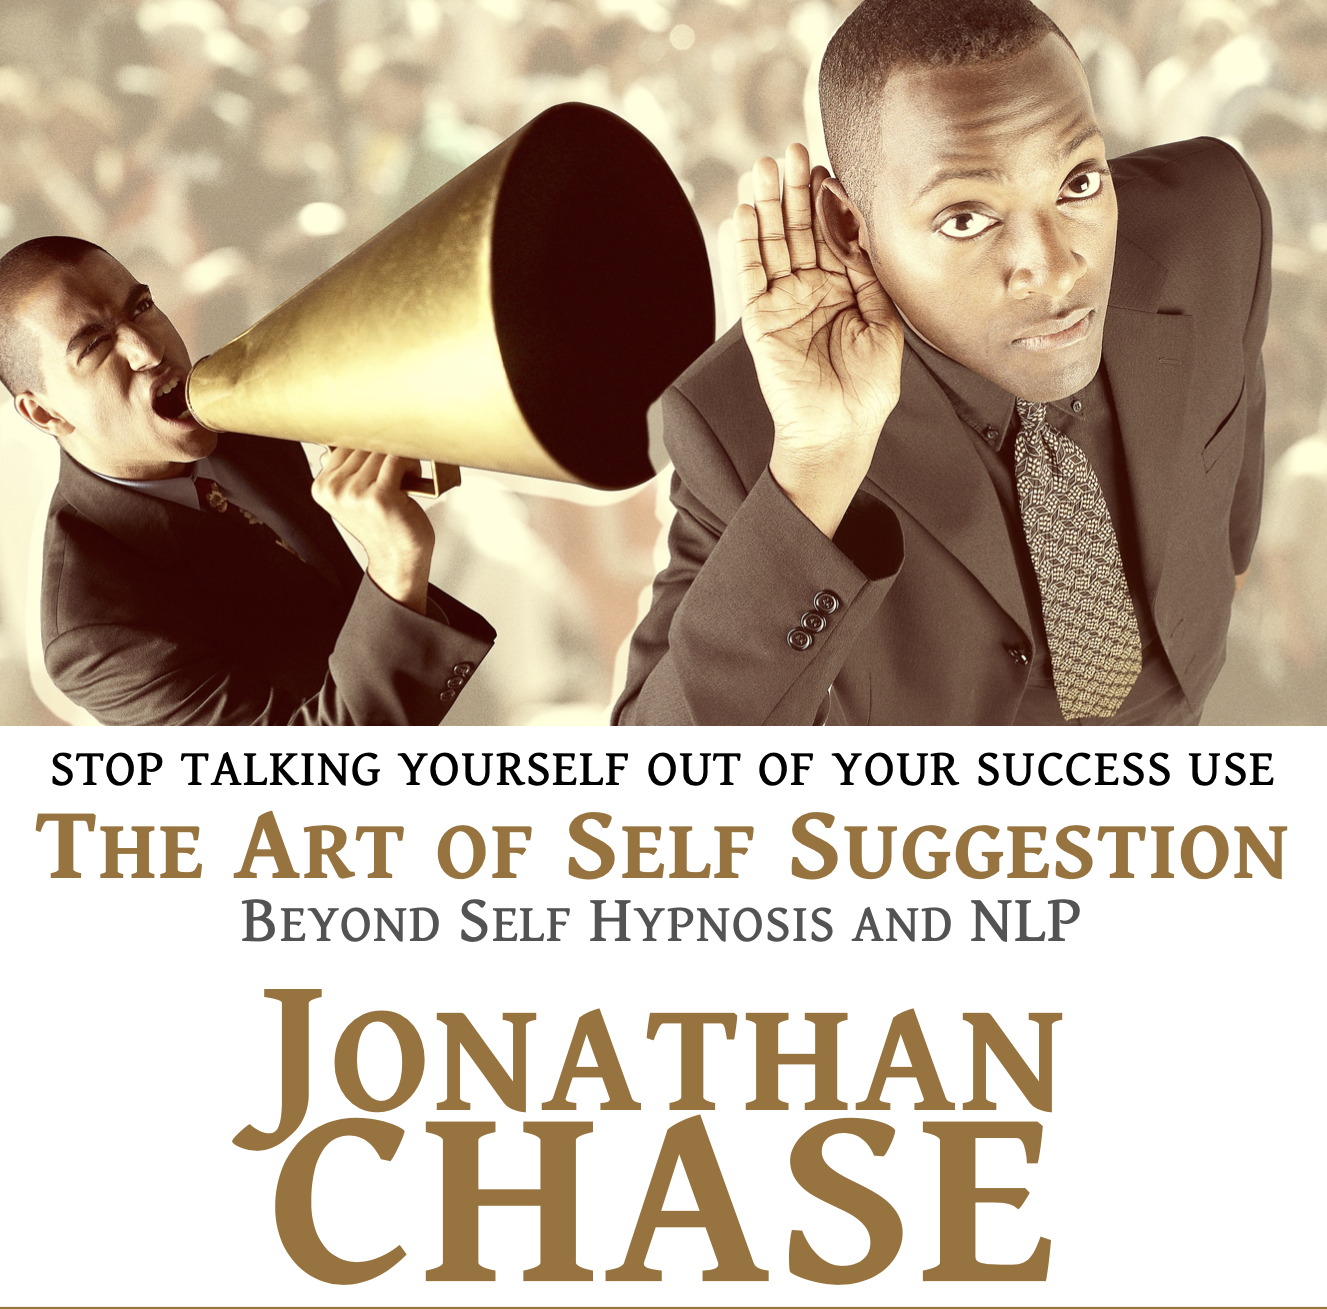 jonathan chase talk yourself into almost anything copy